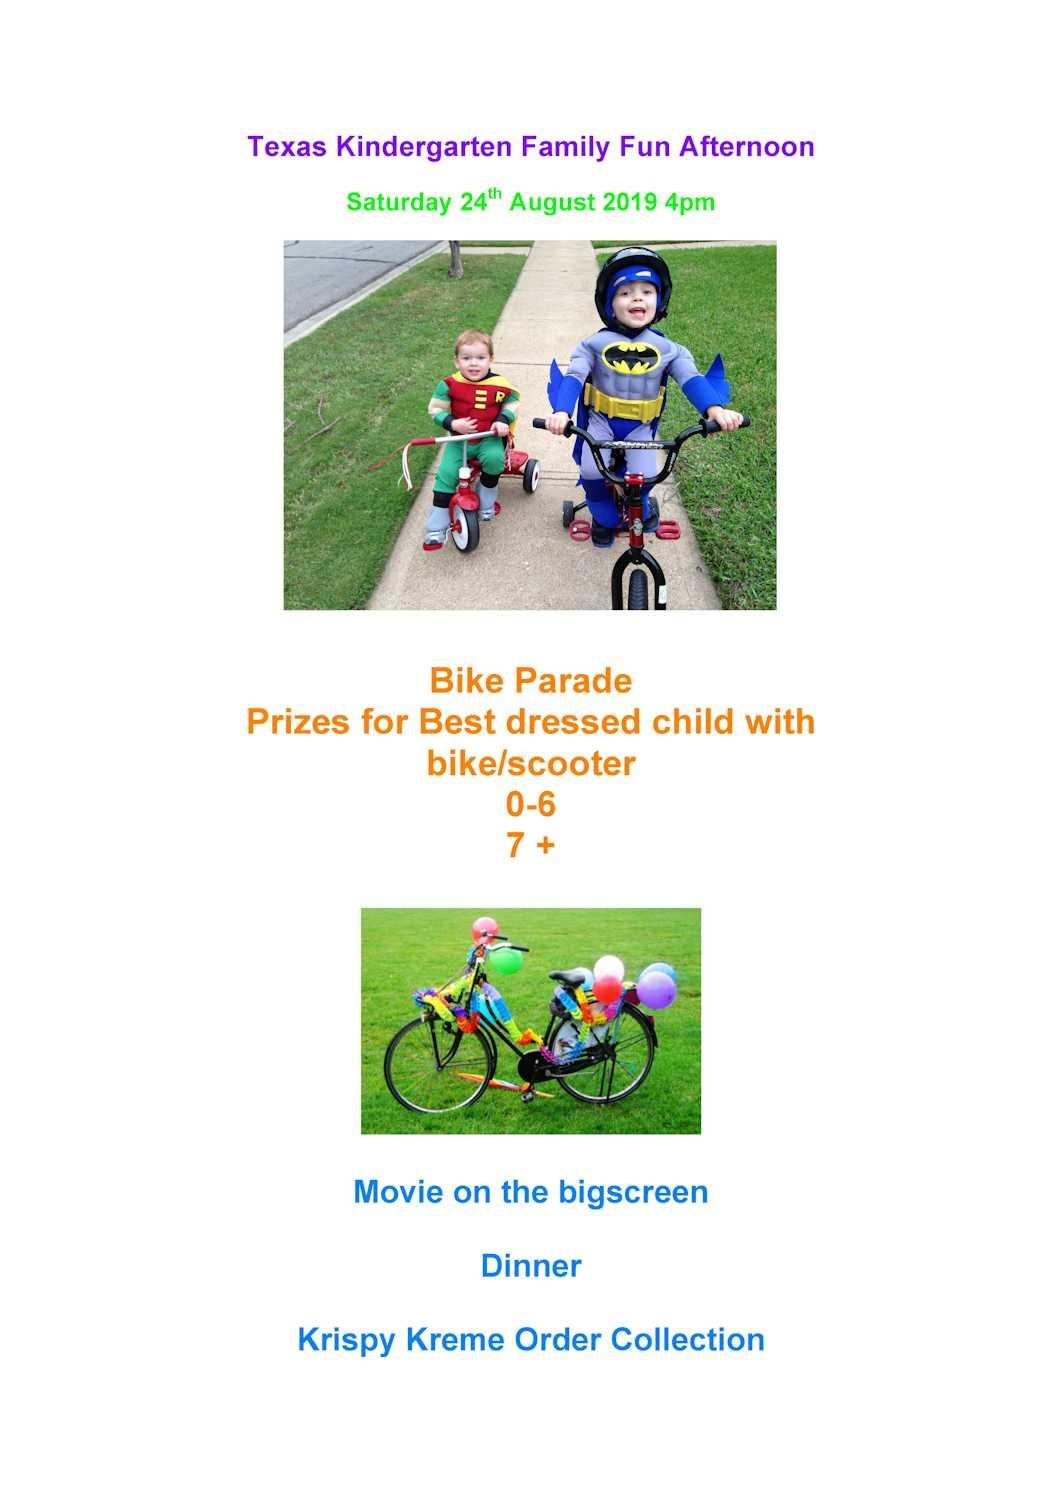 Texas Kindergarten Family Fun Day poster including bike parade and movie